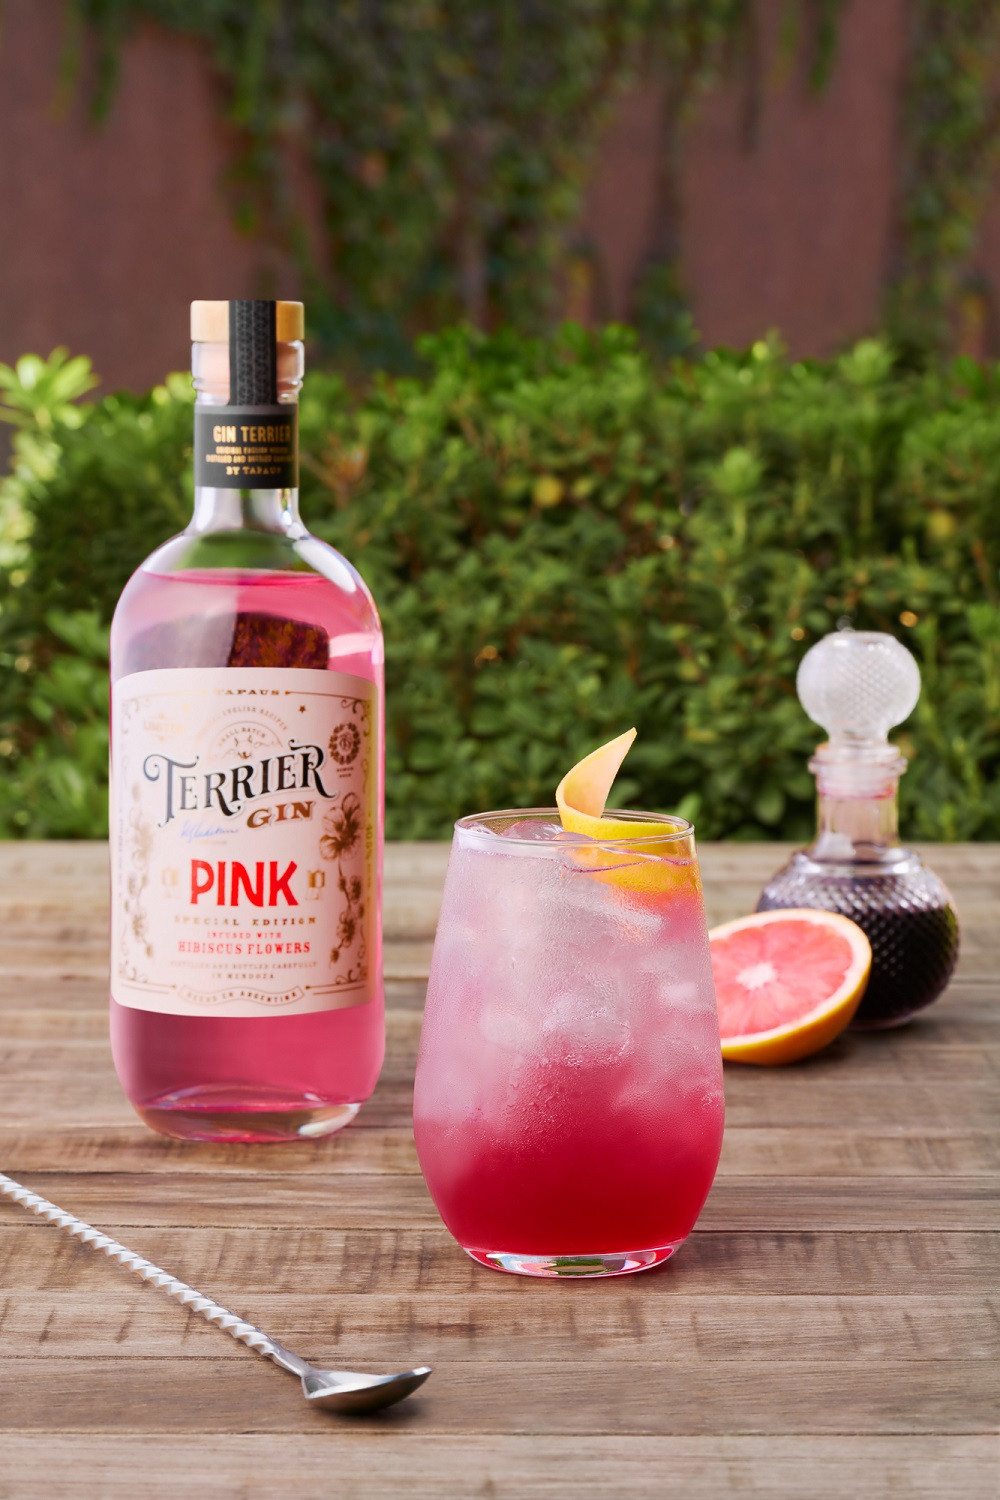 Gin Terrier Pink